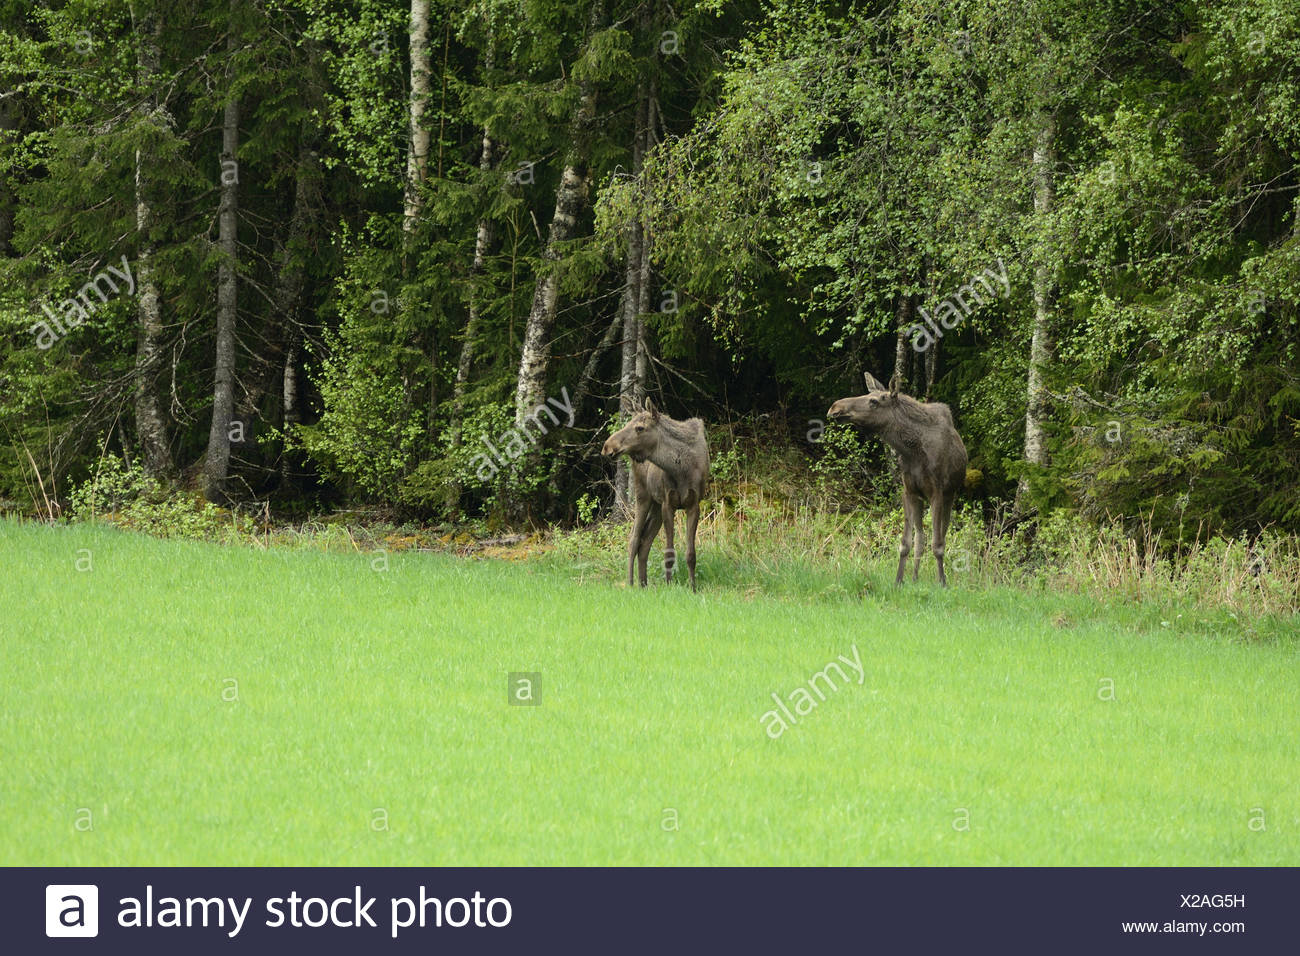 Moose, Alces alces, Cervidae, animal, mammal, Ognedal, Steinkier, Nord-Trondelag, Norway, Europe, - Stock Image